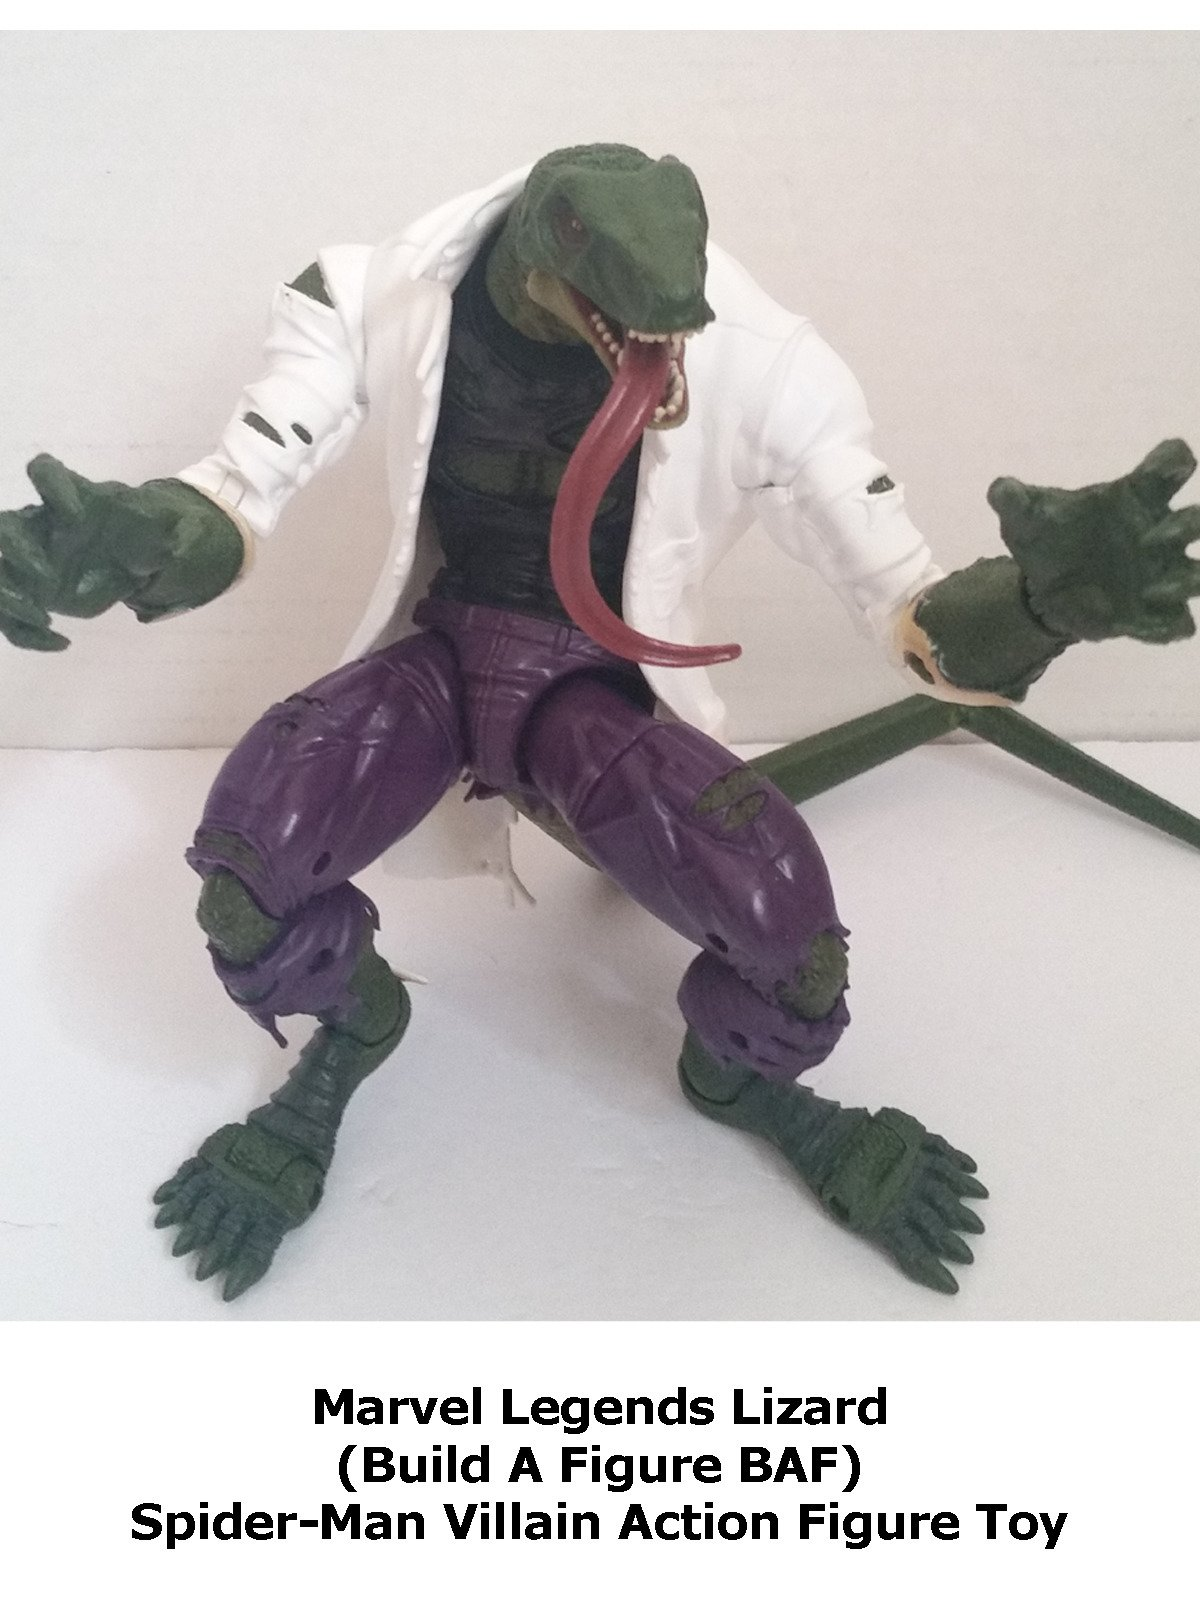 Review: Marvel Legends Lizard (Build A Figure BAF) Spider-Man Villain Action Figure Toy